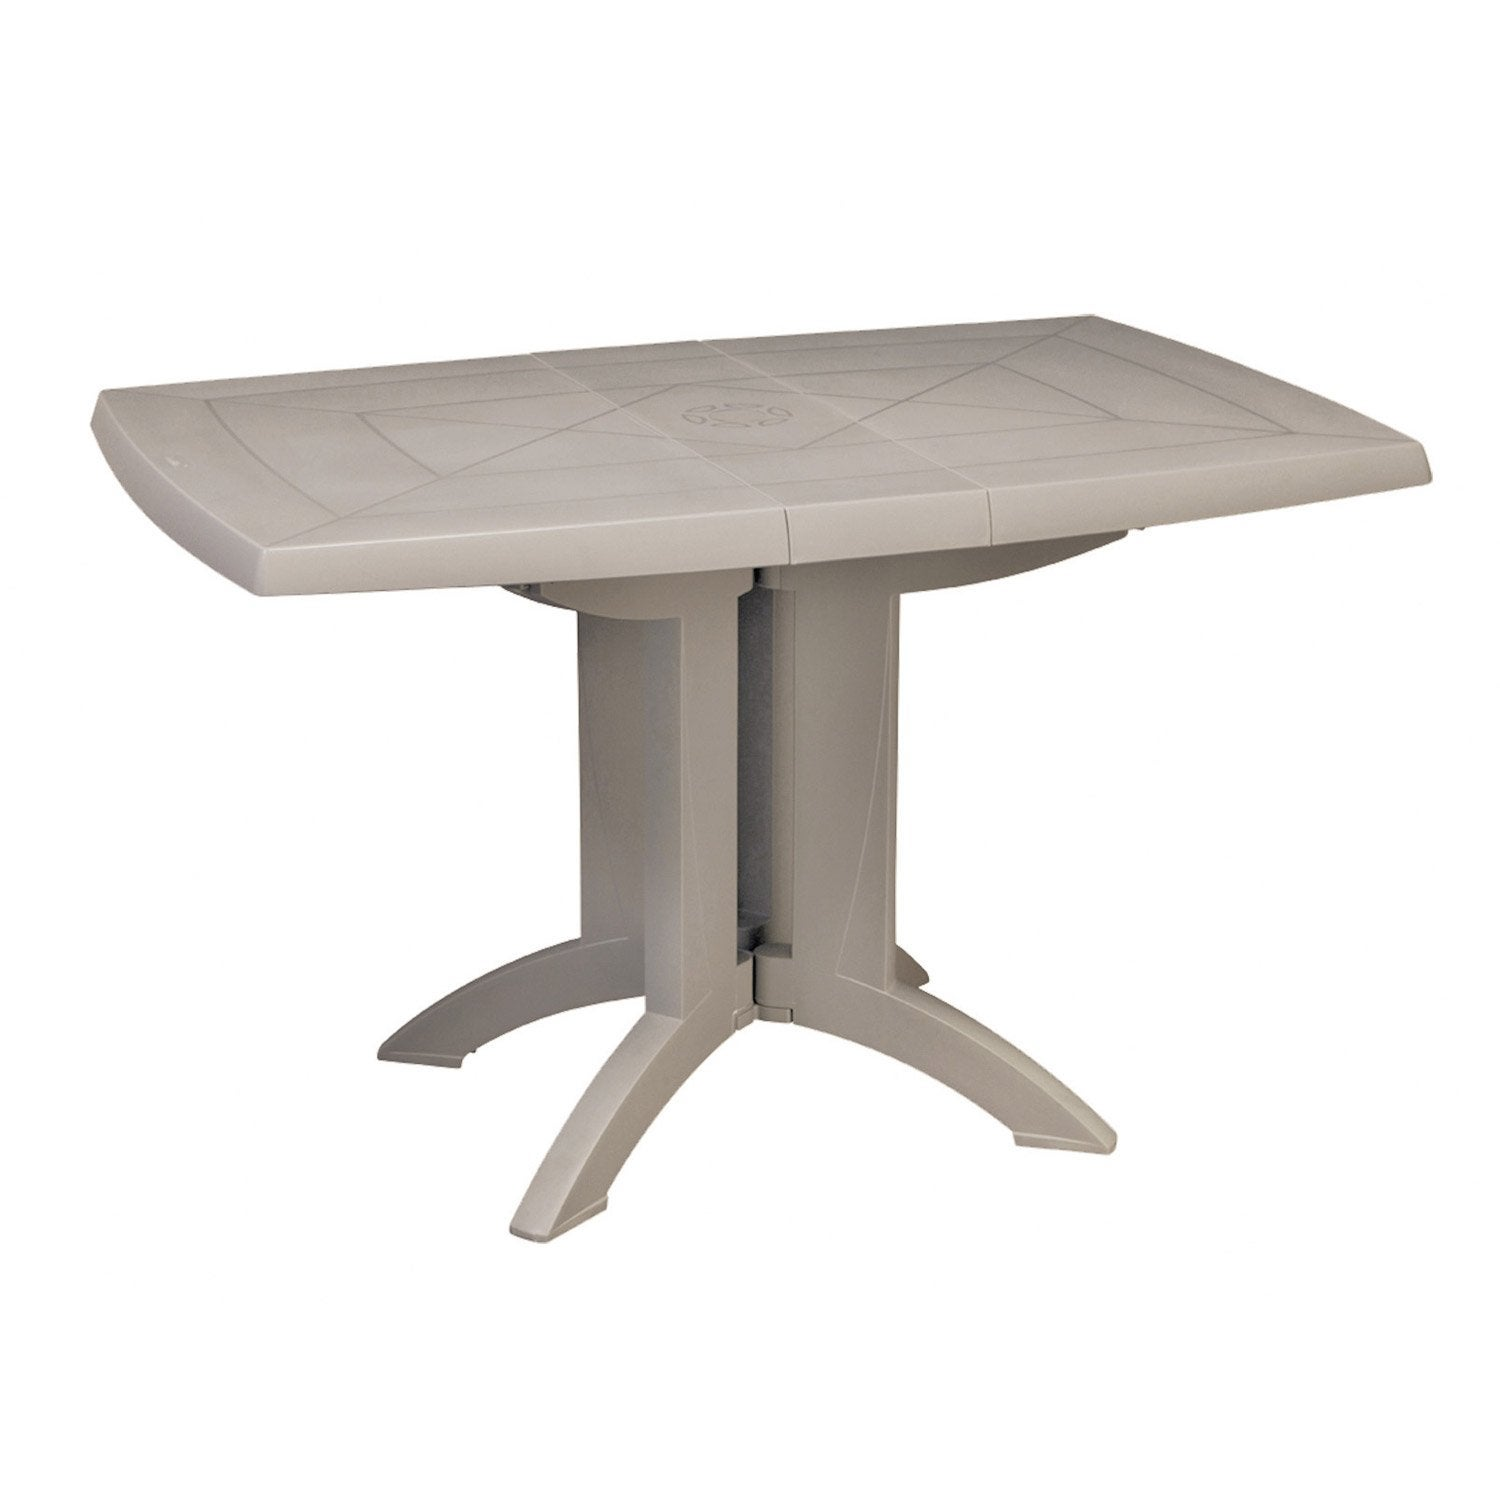 Table jardin 4 personnes maison design for Table salon de jardin pliante